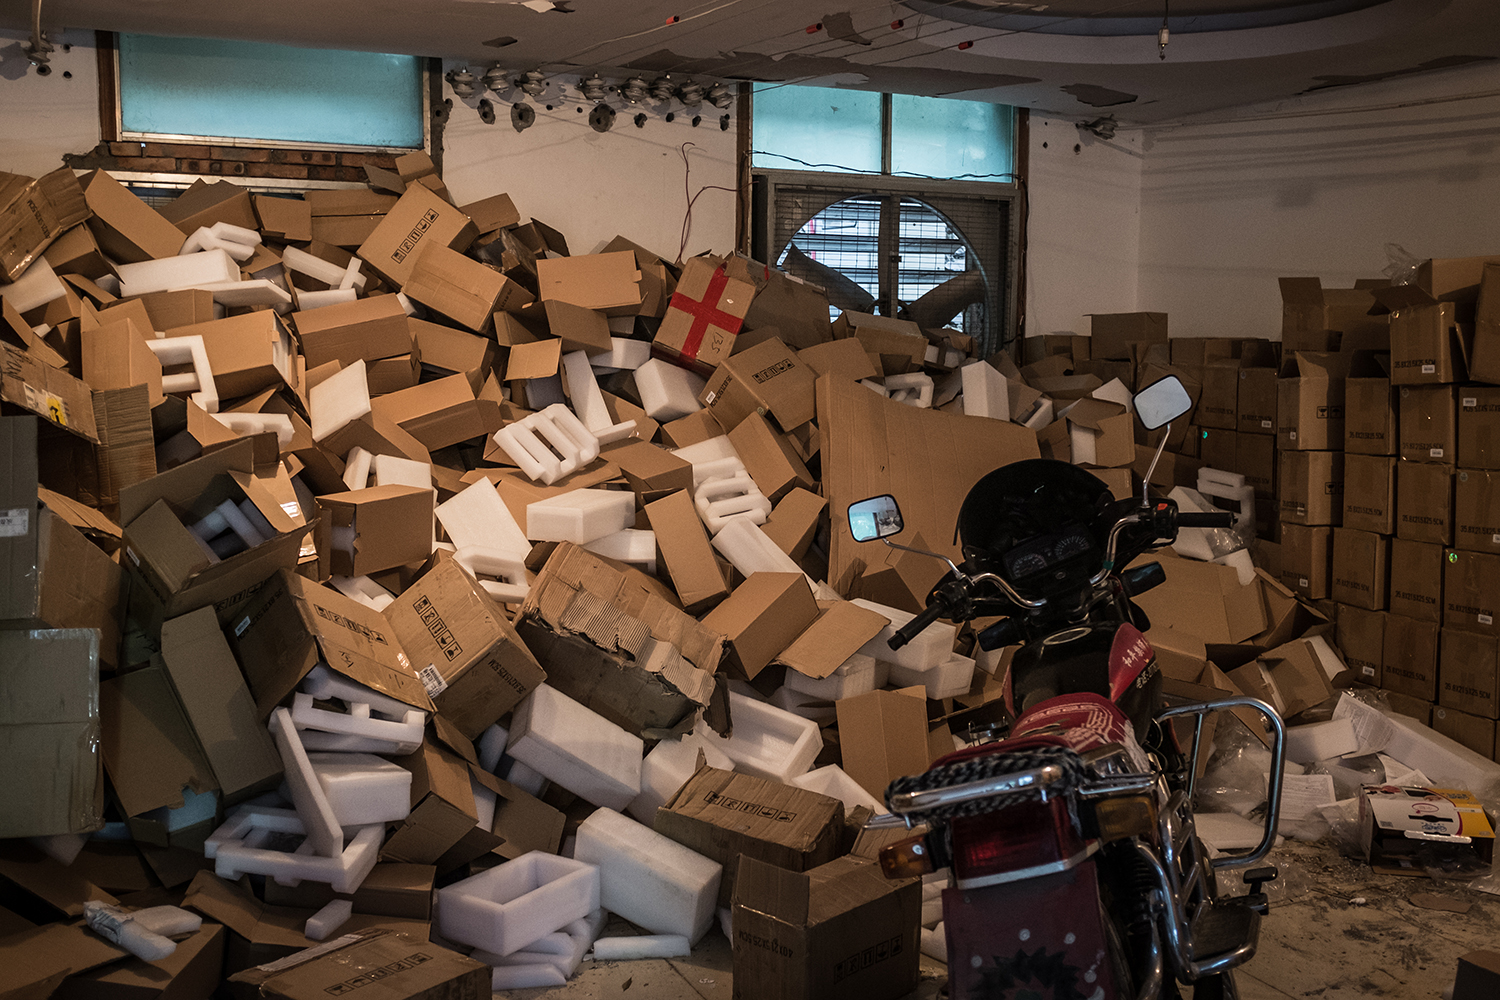 Packing boxes for mining machines pile up in an employee dormitory, September 26, 2016. Kun recently purchased new mining machines: the AntMiner S7 (U.S.$490) which has greater computing power than the  AntMiner S5 (U.S.$140) it would replace. 550 mining machines, a combination of S7 and S5 models, running 24 hours can mine 2.5 Bitcoins a day, according to Kun—worth around U.S.$6,400.